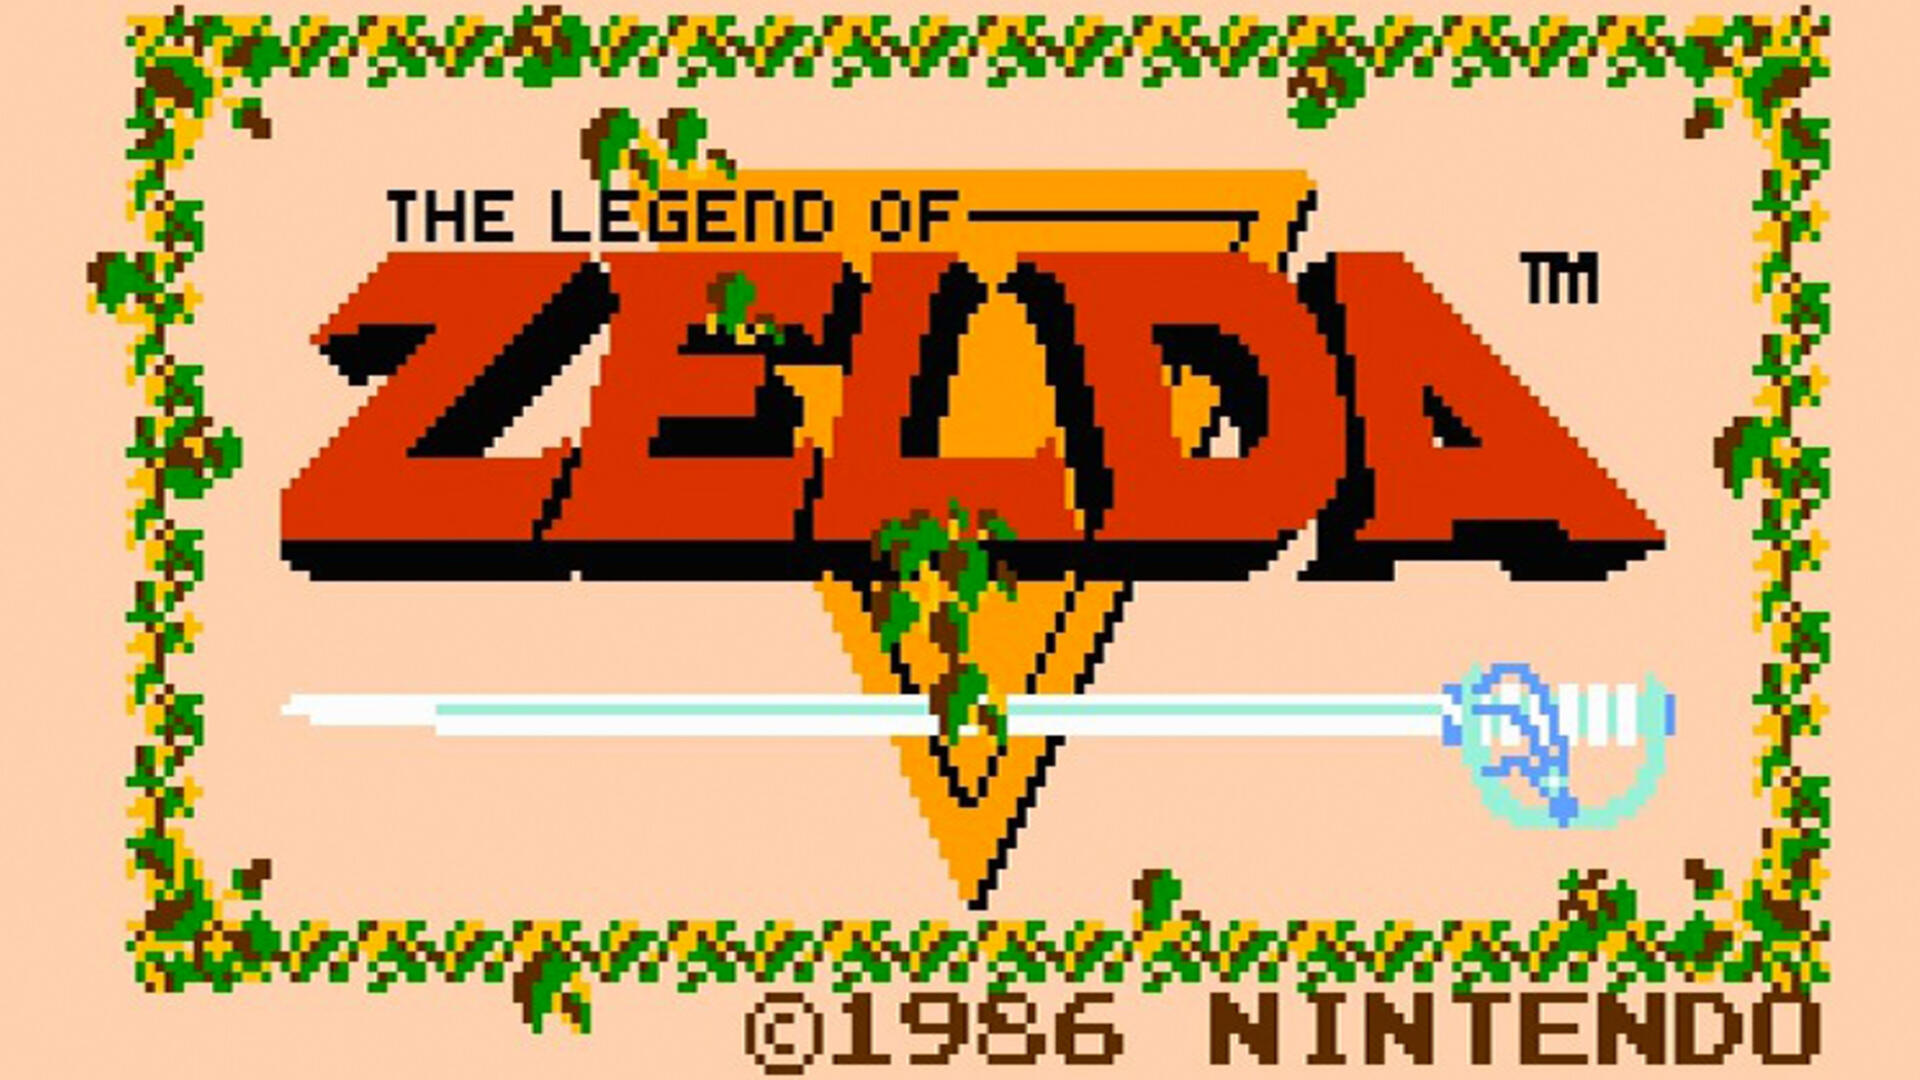 Long Time Coming: Finishing the Original Legend of Zelda in